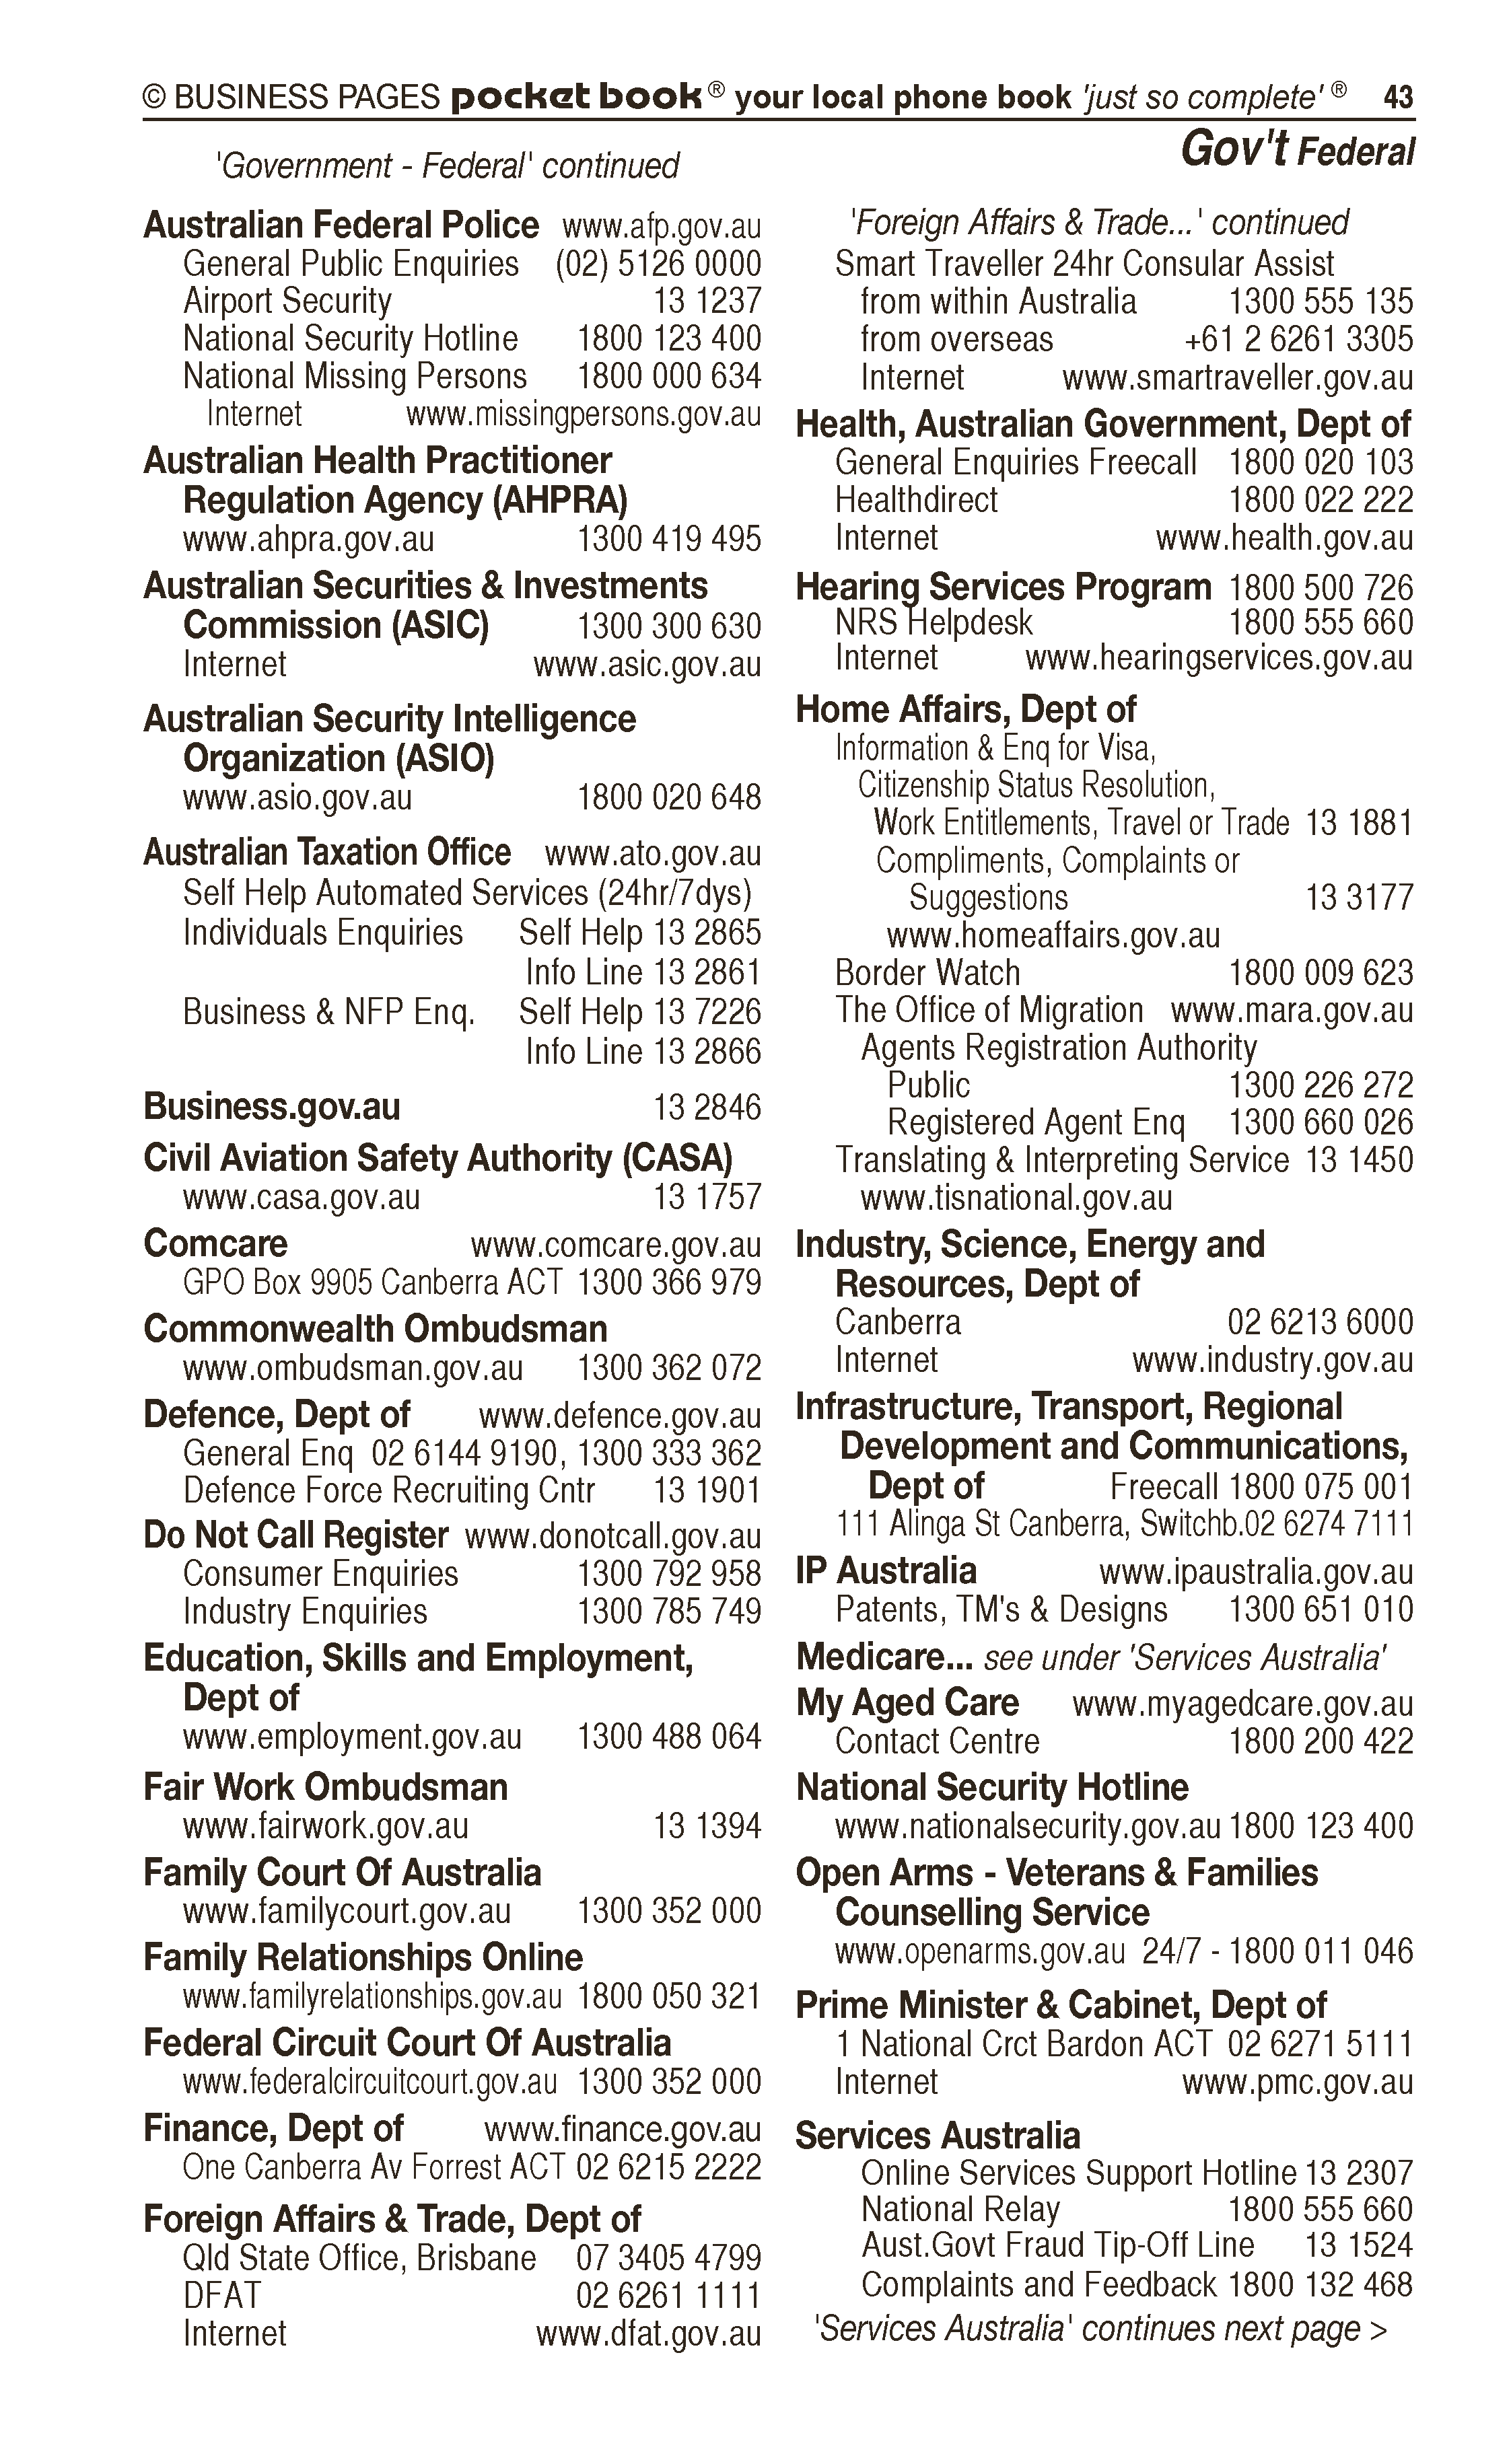 AgriTill Contract Farming Pty Ltd | Farm – Contractors in Goondiwindi | PBezy Pocket Books local directories - page 43